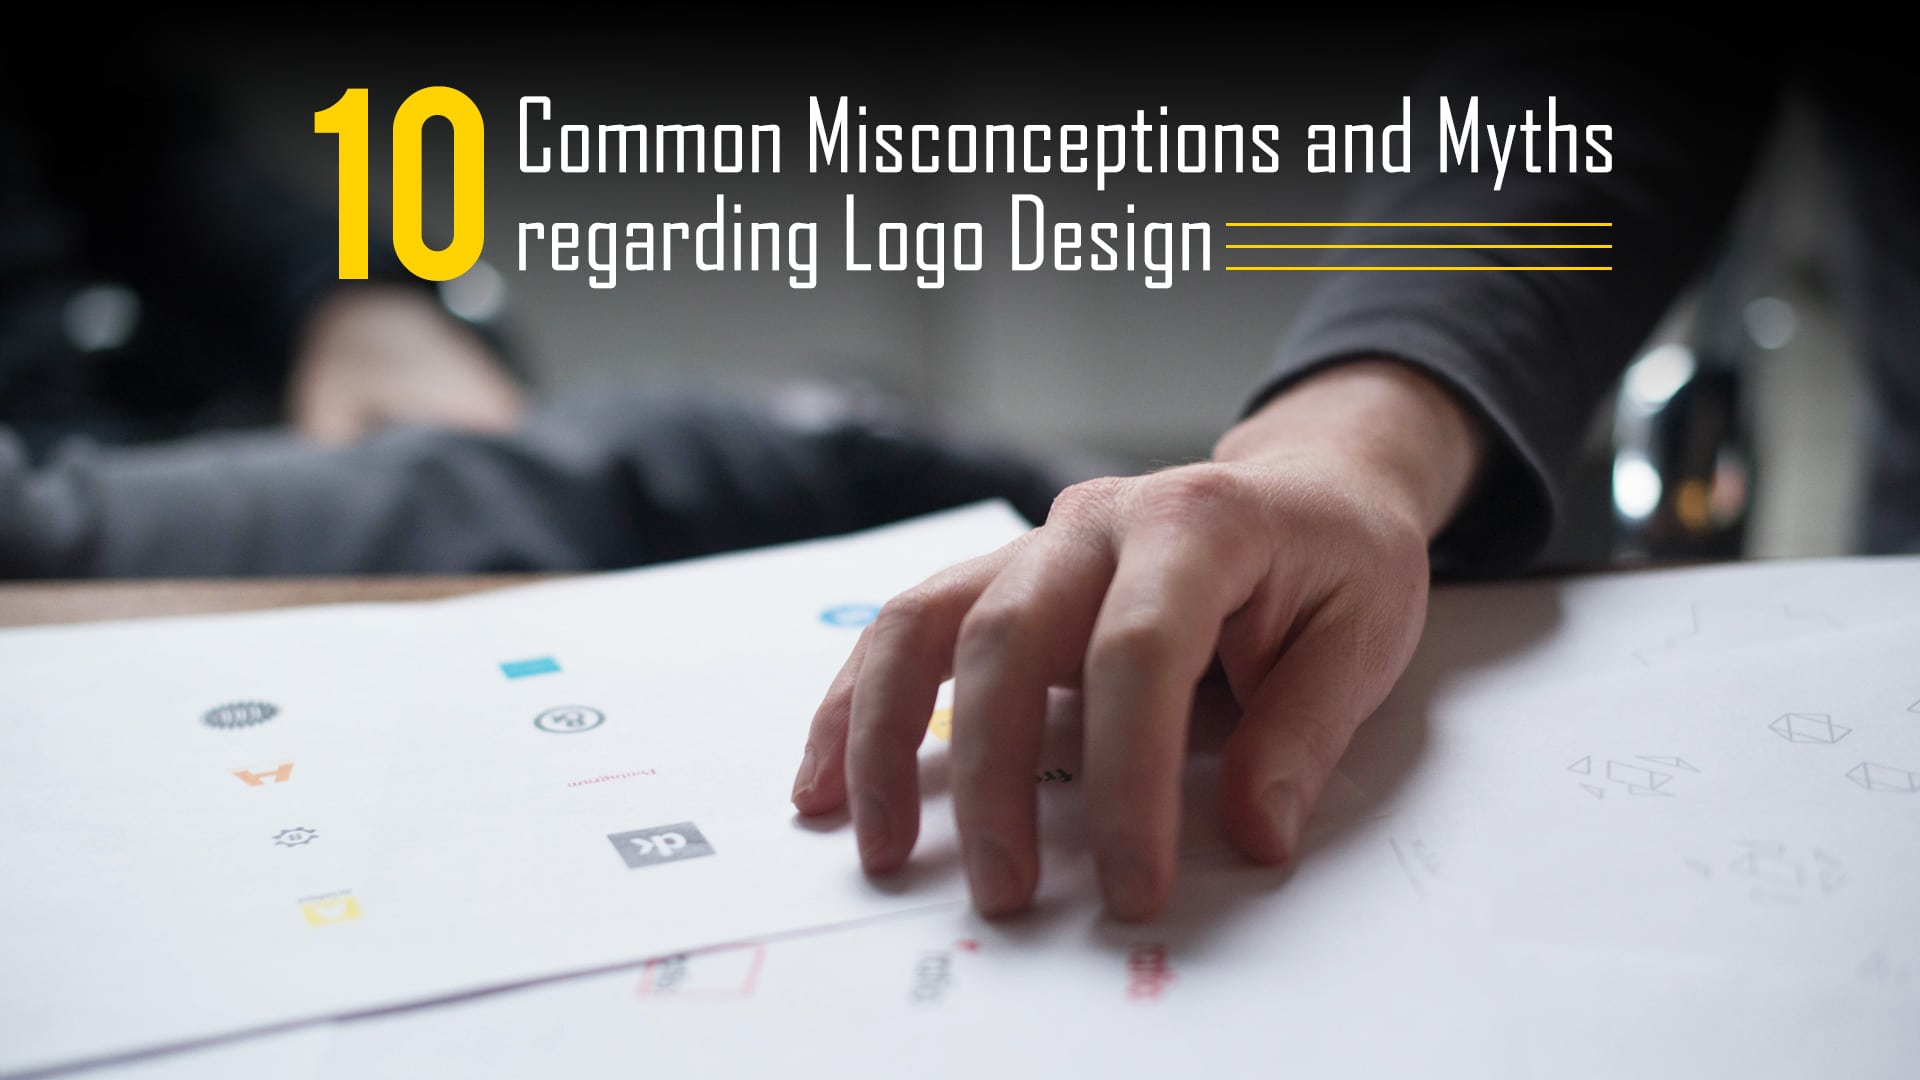 10 Common Misconceptions And Myths Regarding Logo Design